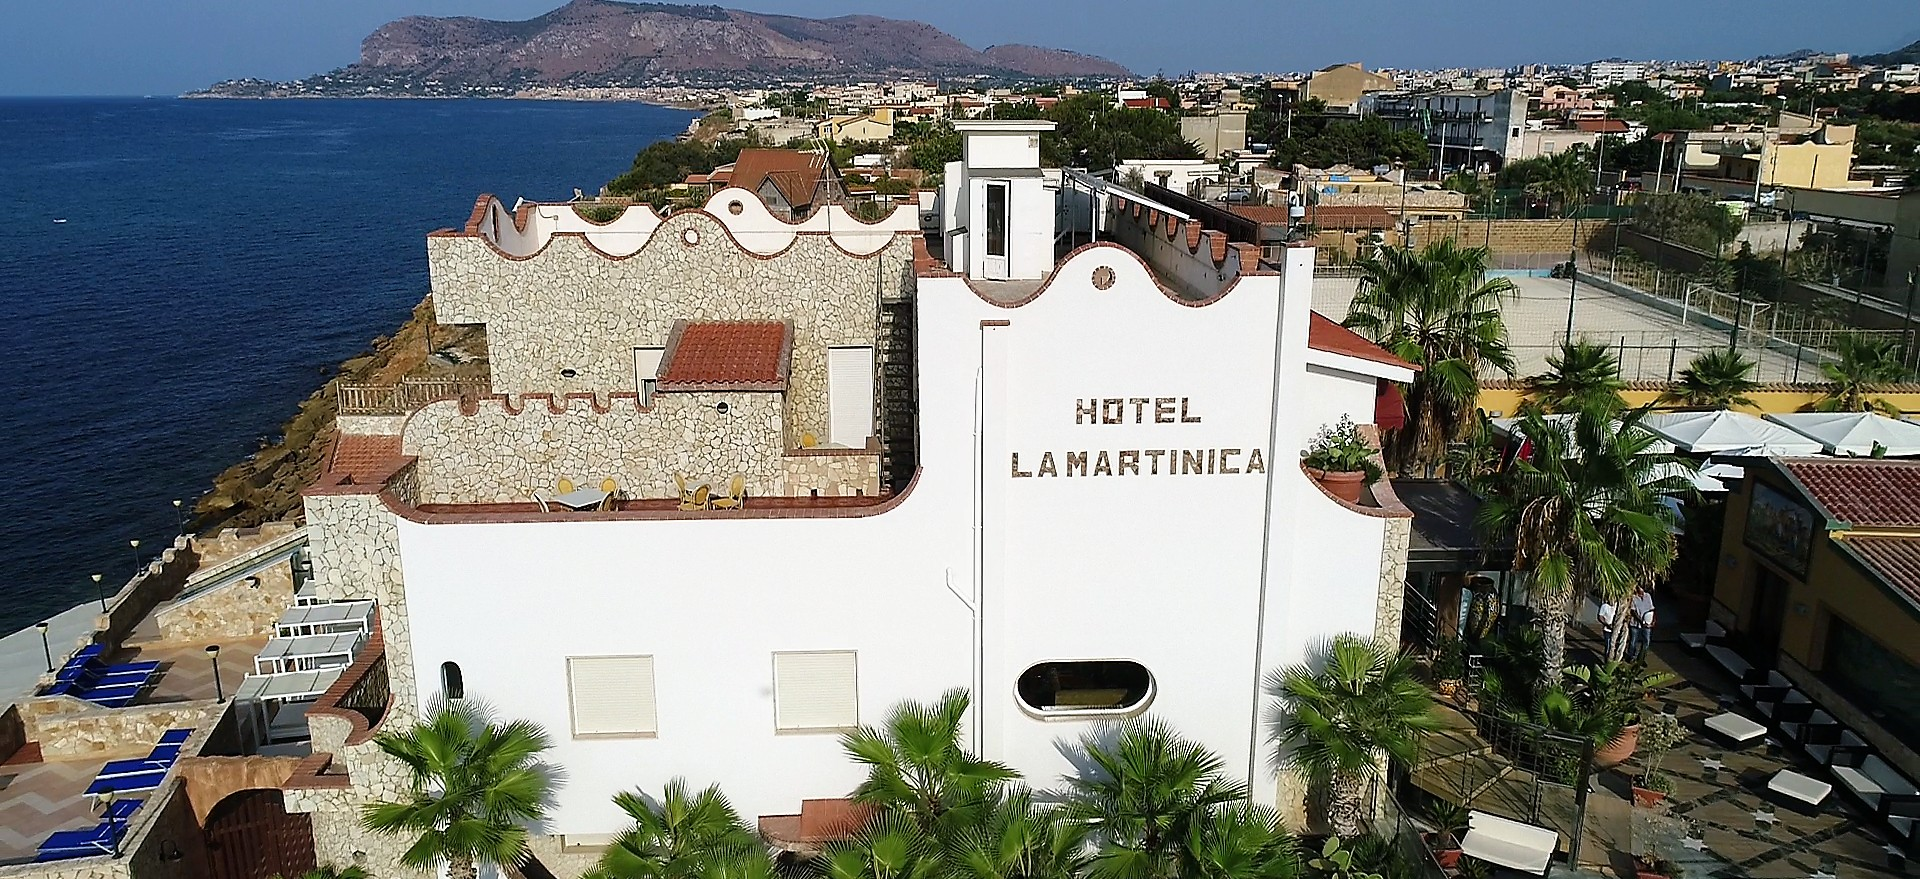 la martinica resort